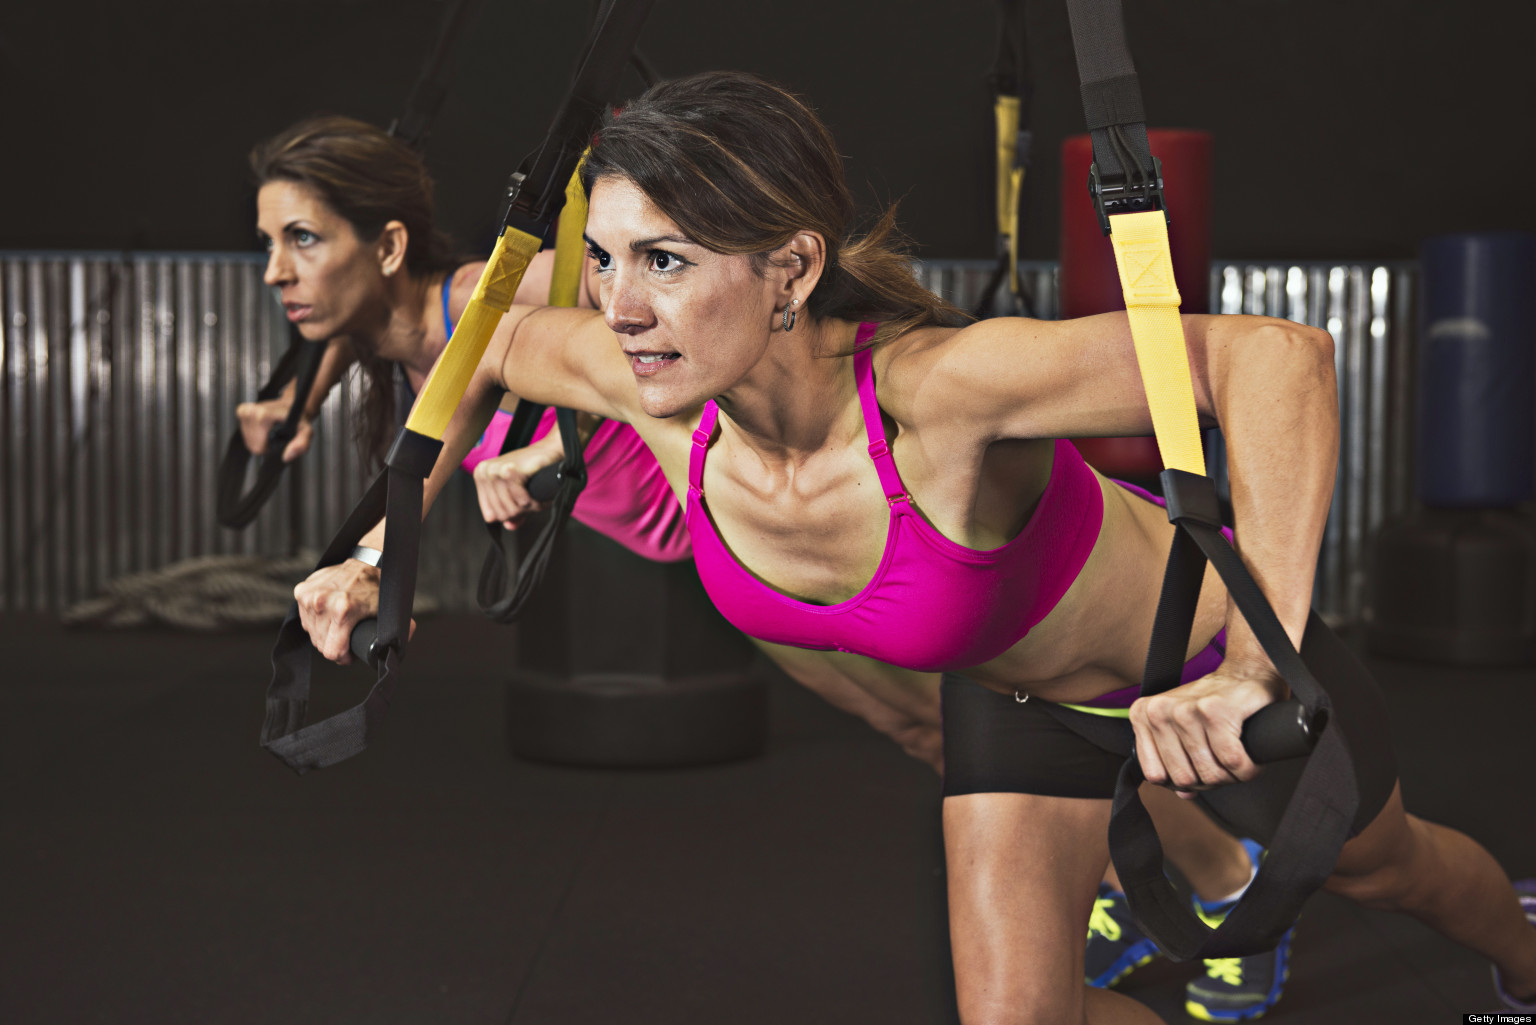 Crossfit Body Women The CrossFit Craze 5 Reasons